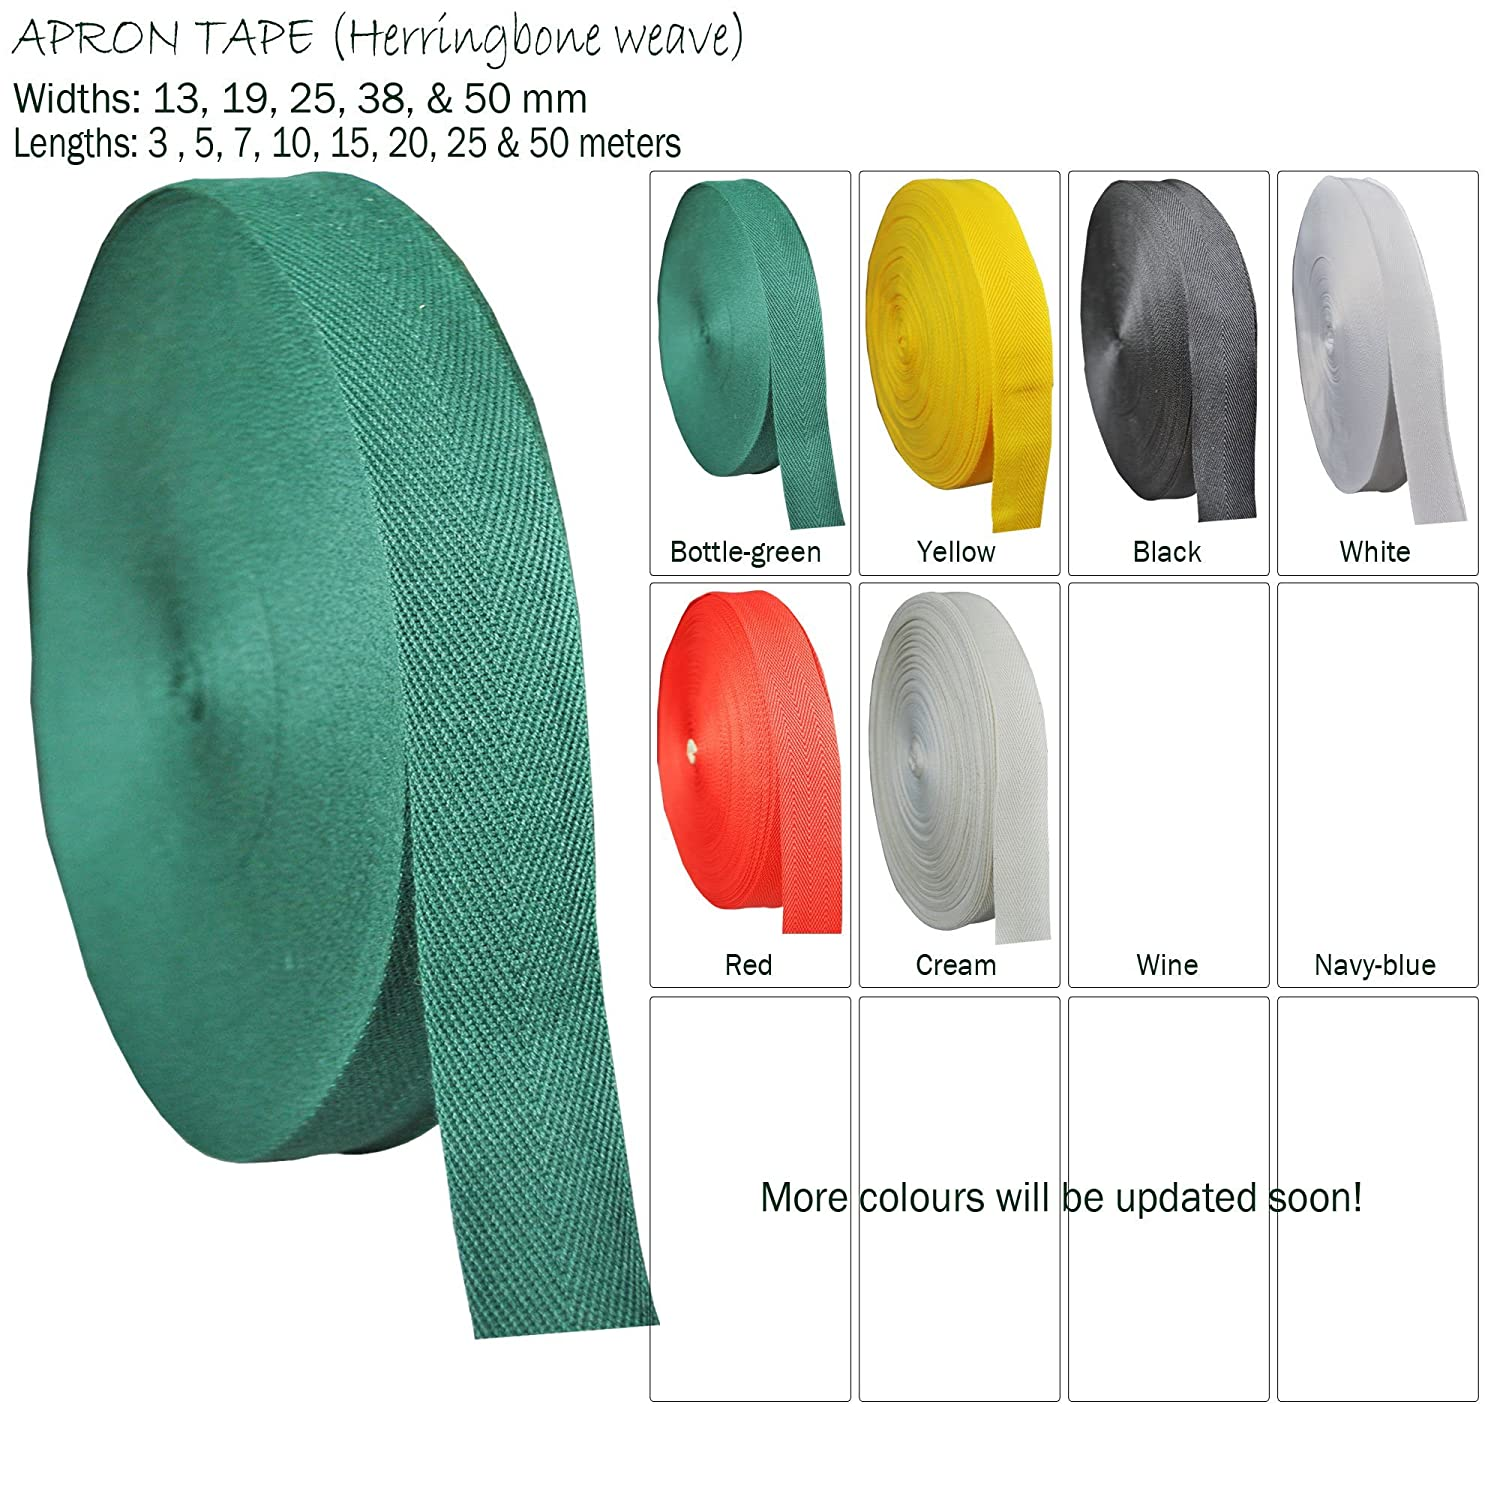 White apron tape - Spun Polyester Apron Tape Pattern Herringbone Weave Tape To Bind Edges Trim Bunting Upholstery Twill Edging Lengths Pre Cut Widths 13 19 25 38 And 50 Mm 25